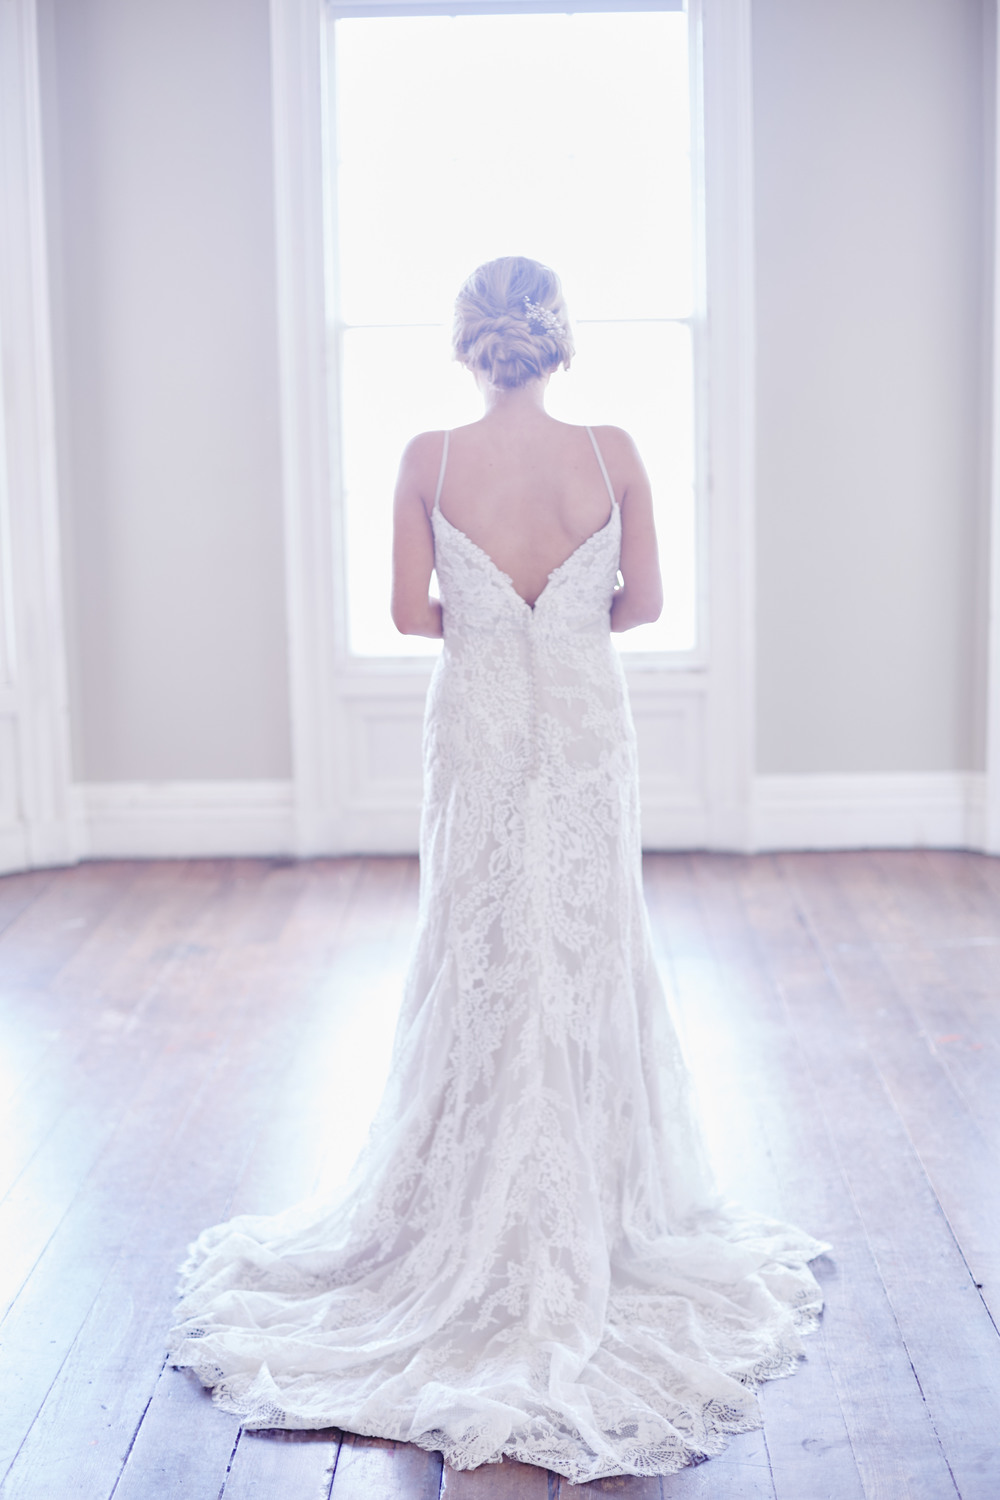 Styled_Session_Becca_Bridal_Portraits_Sarah_Tau_Photography_HOB_Studio_285 90.jpg